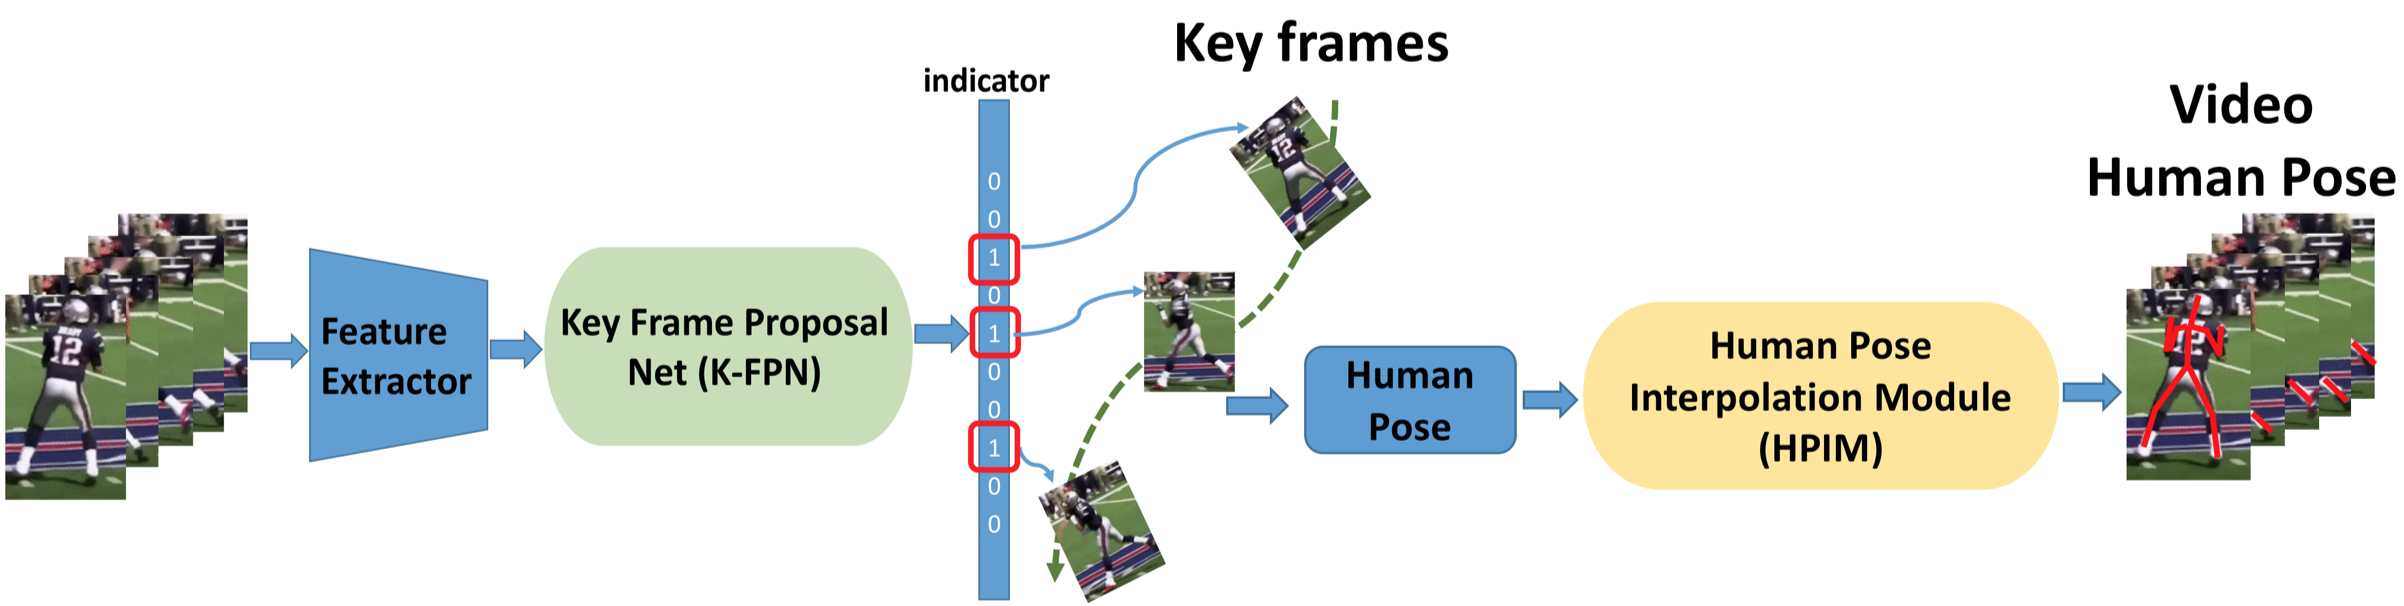 The K-FPN net, which is trained unsupervised, selects a set of key frames. The Human Pose Interpolation Module (HPIM), trained to learn human pose dynamics, generates human poses for the entire input sequence from the poses in the key frames.